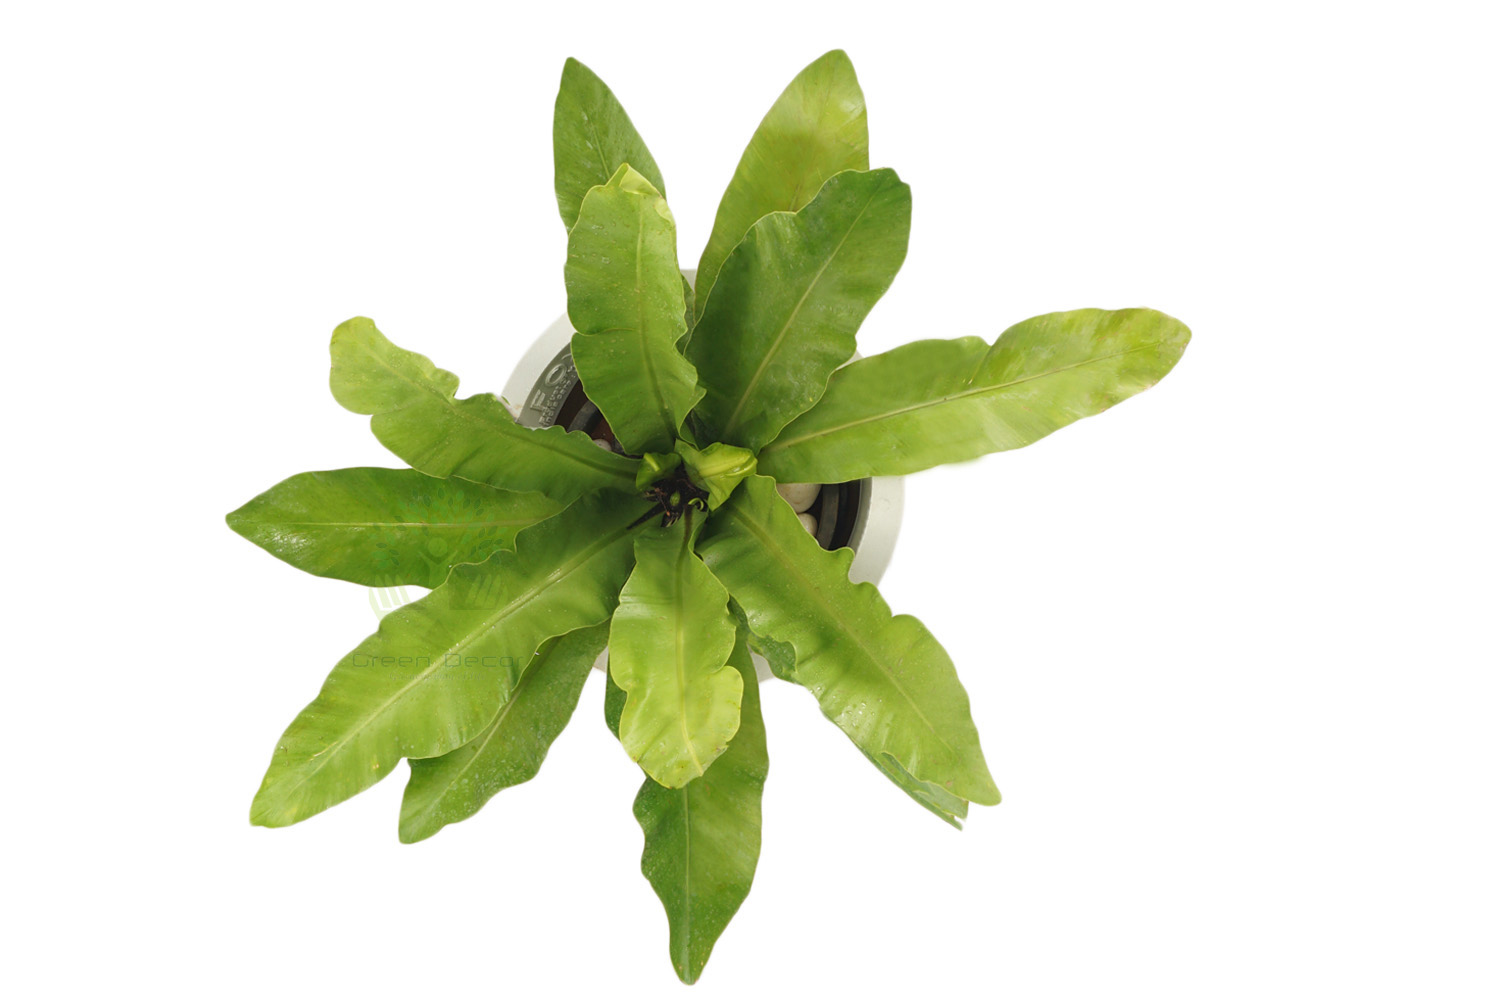 Buy Asplenium Nidus Plants , White Pots and seeds in Delhi NCR by the best online nursery shop Greendecor.